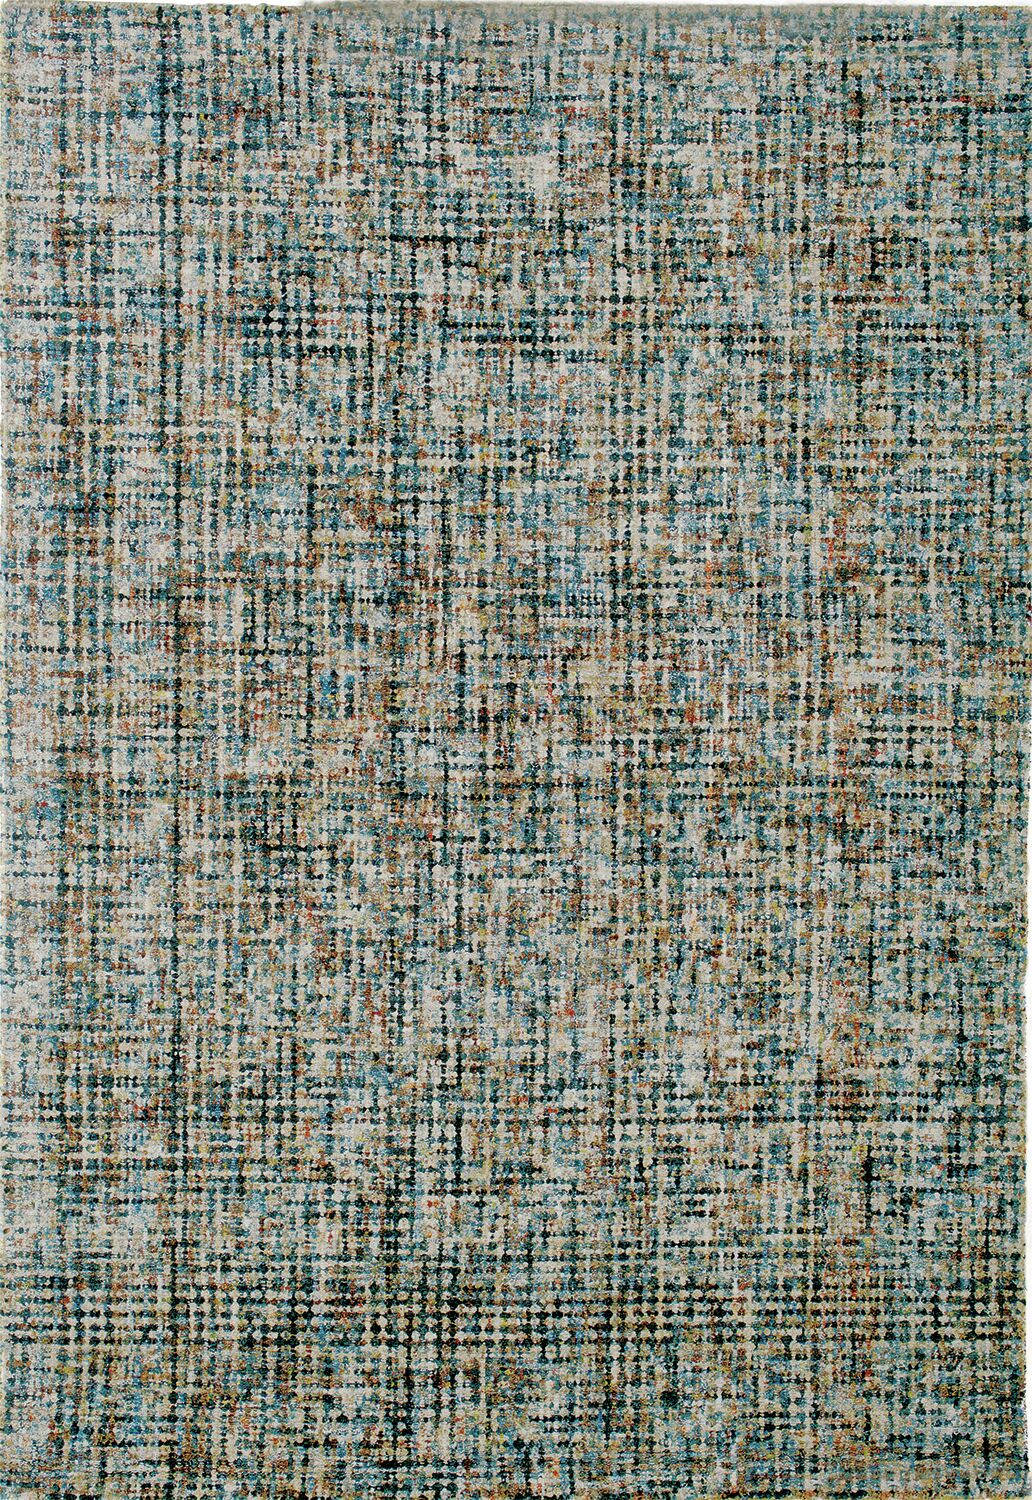 Rowley Hand-Tufted Blue/Brown Area Rug Rug Size: 8' x 10'